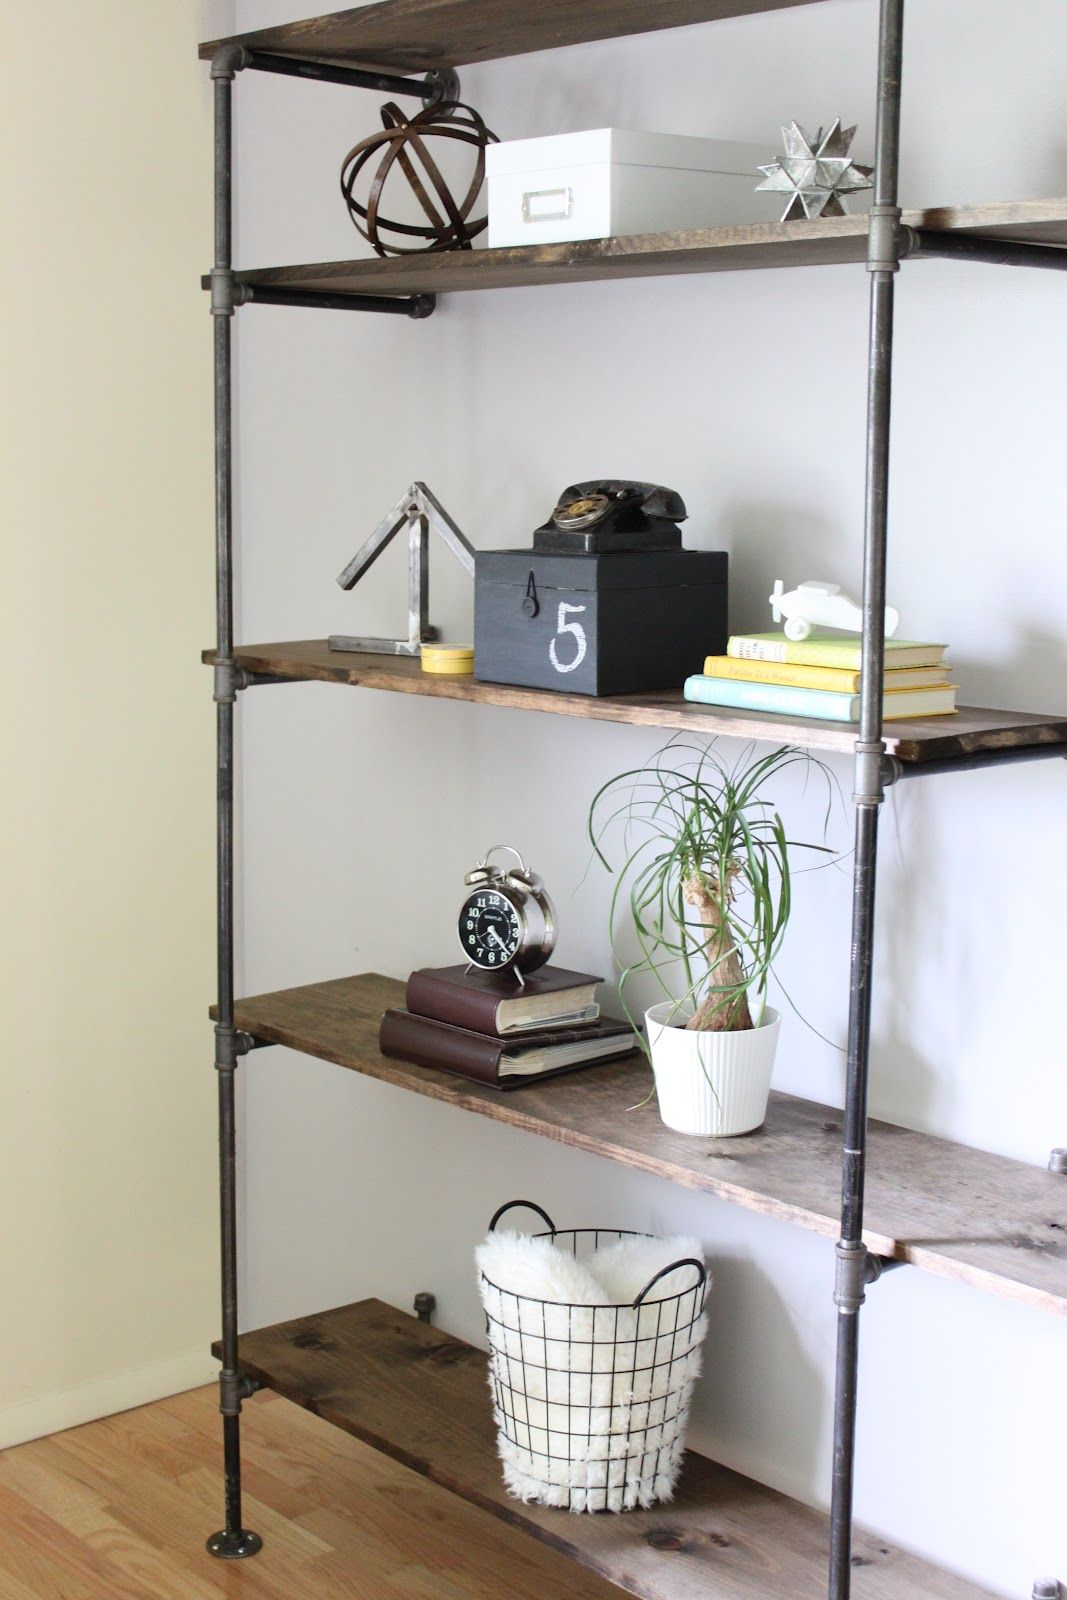 hipster shelves   Office   Pinterest   Hipsters, Shelves and Bedrooms